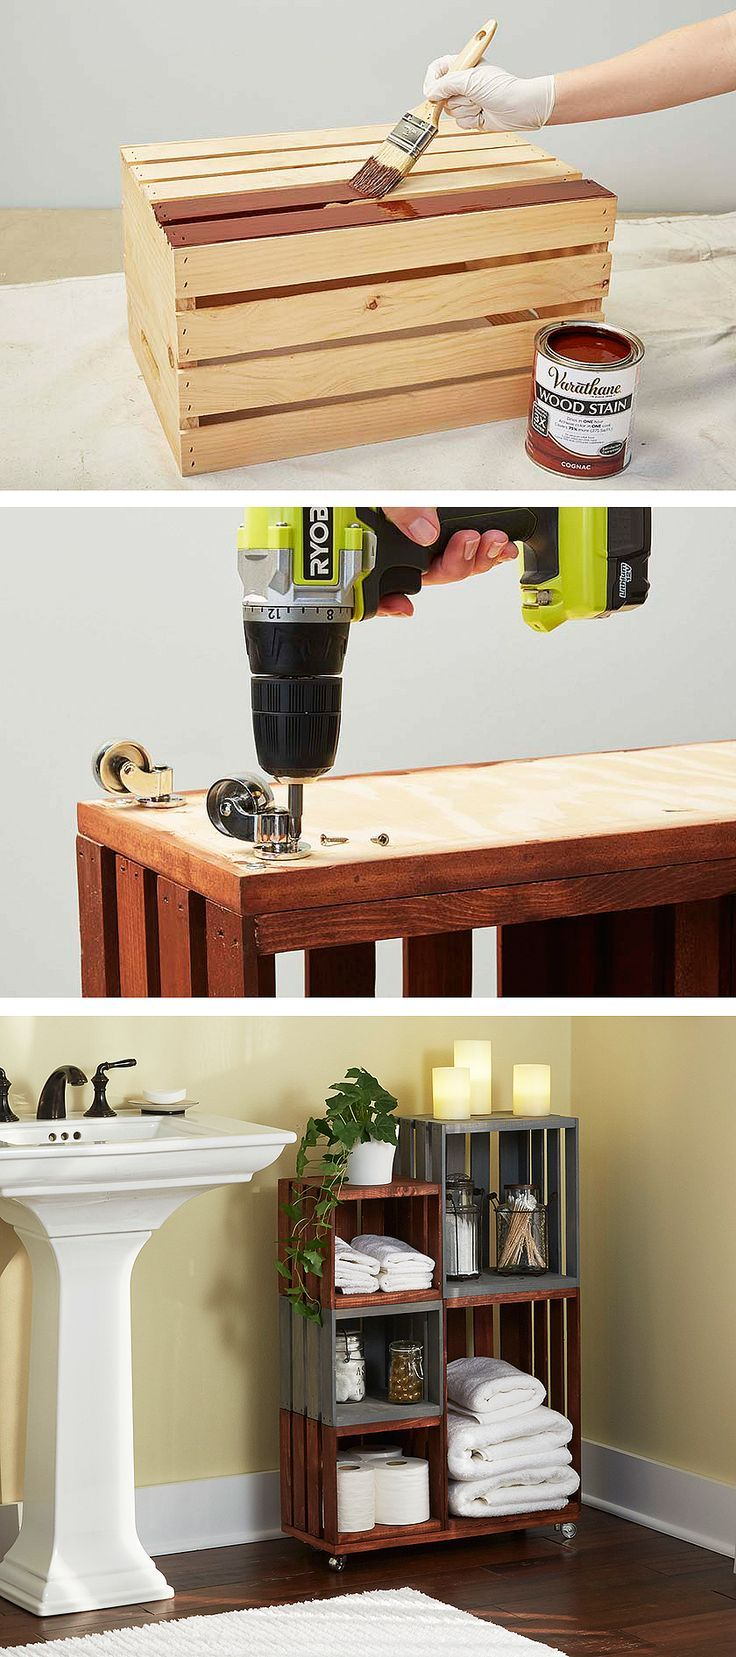 Pinterest Home Decor Kitchen 25 Best Ideas About Diy Decorating On Pinterest Room